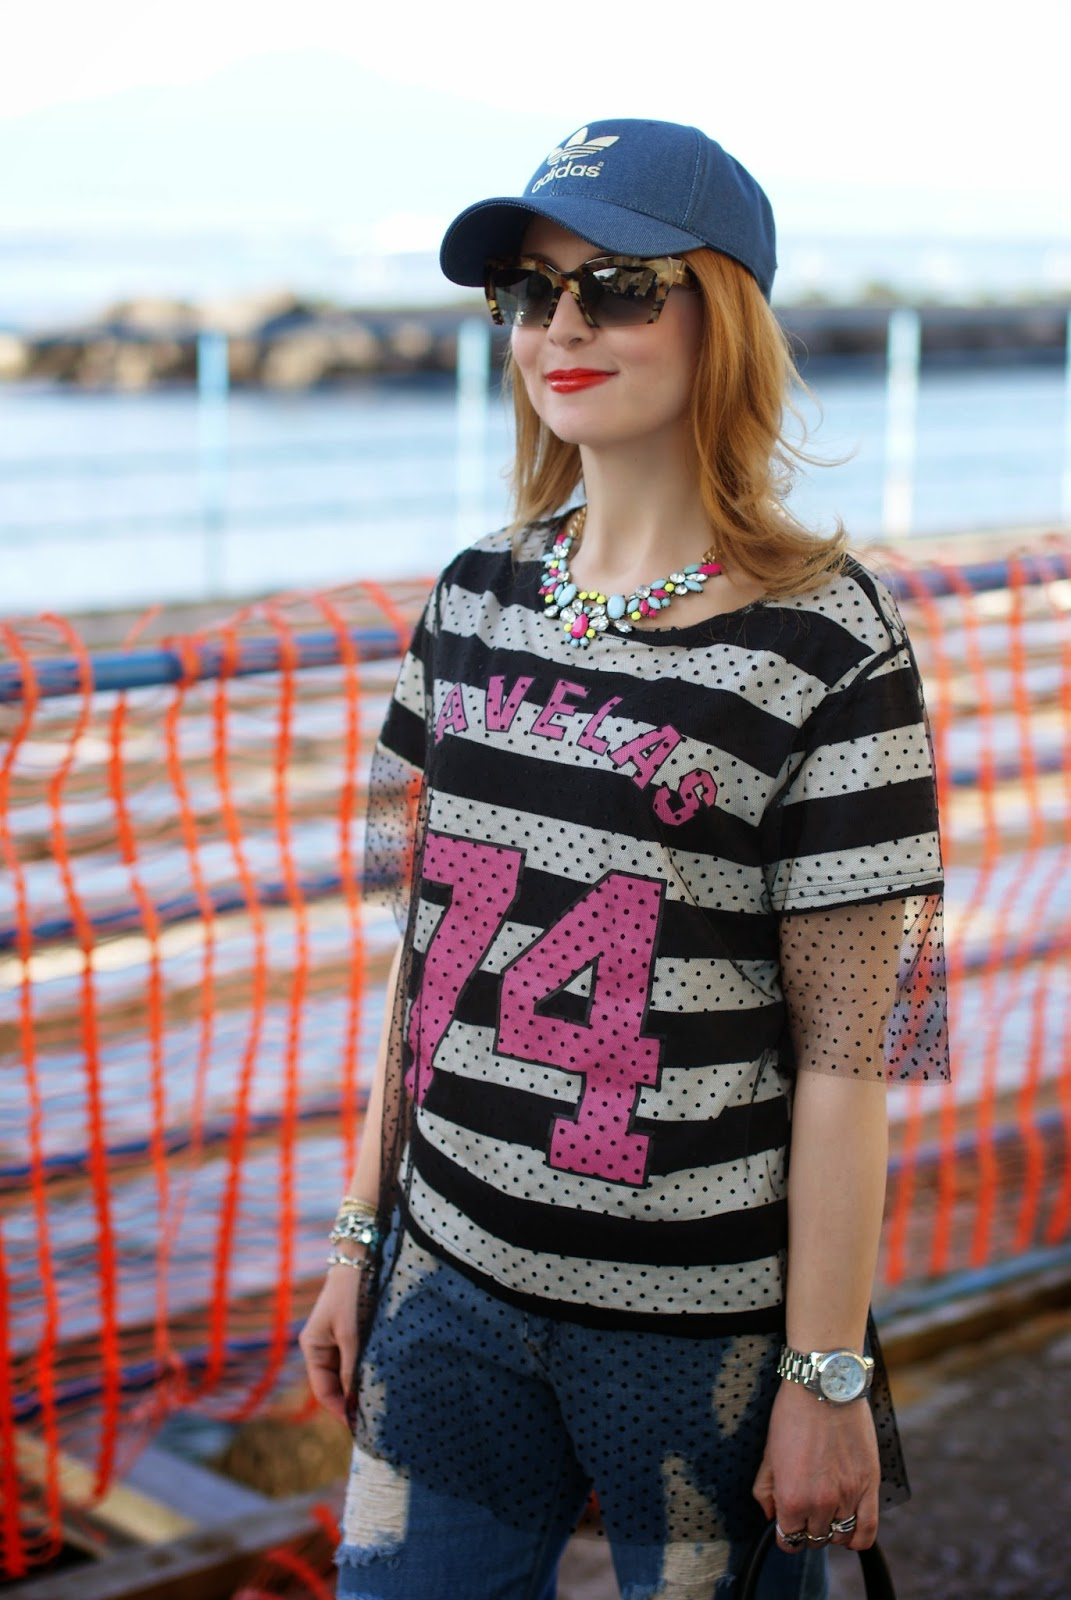 Kilibbi t-shirt, tulle on t.shirt, baseball cap, Fashion and Cookies, fashion blogger